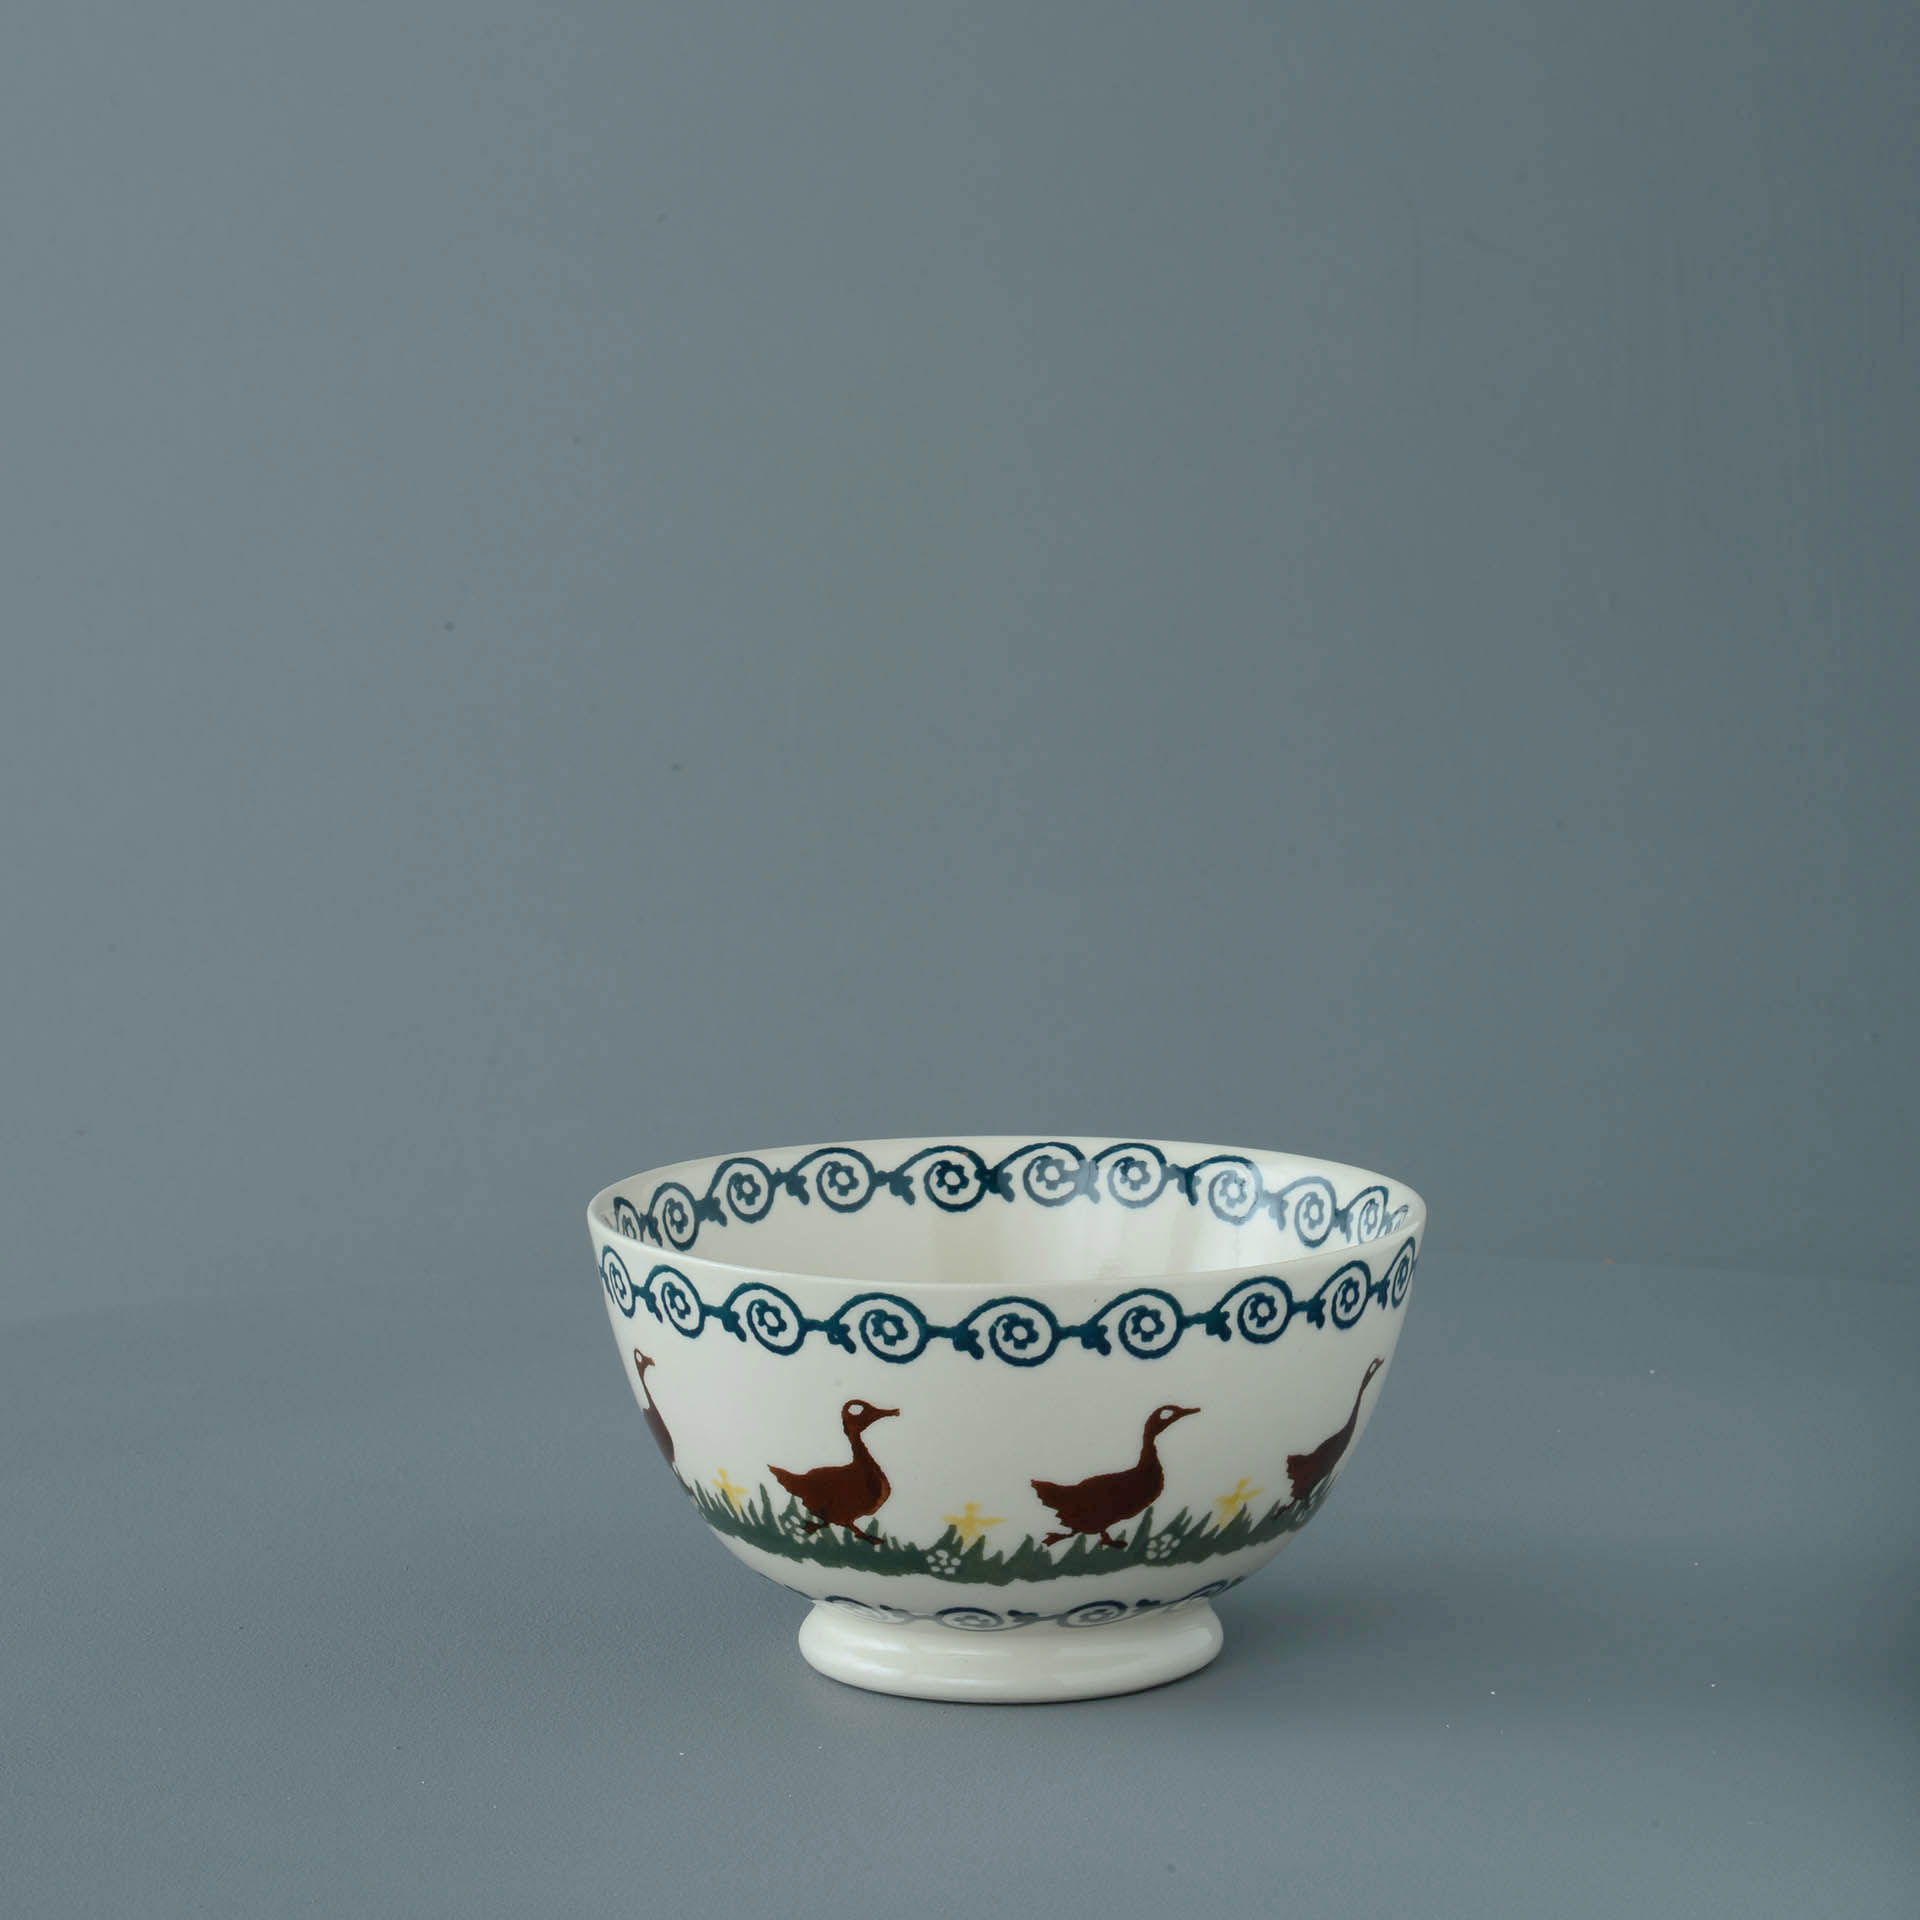 Ducks Cereal Bowl 7 x 13cm